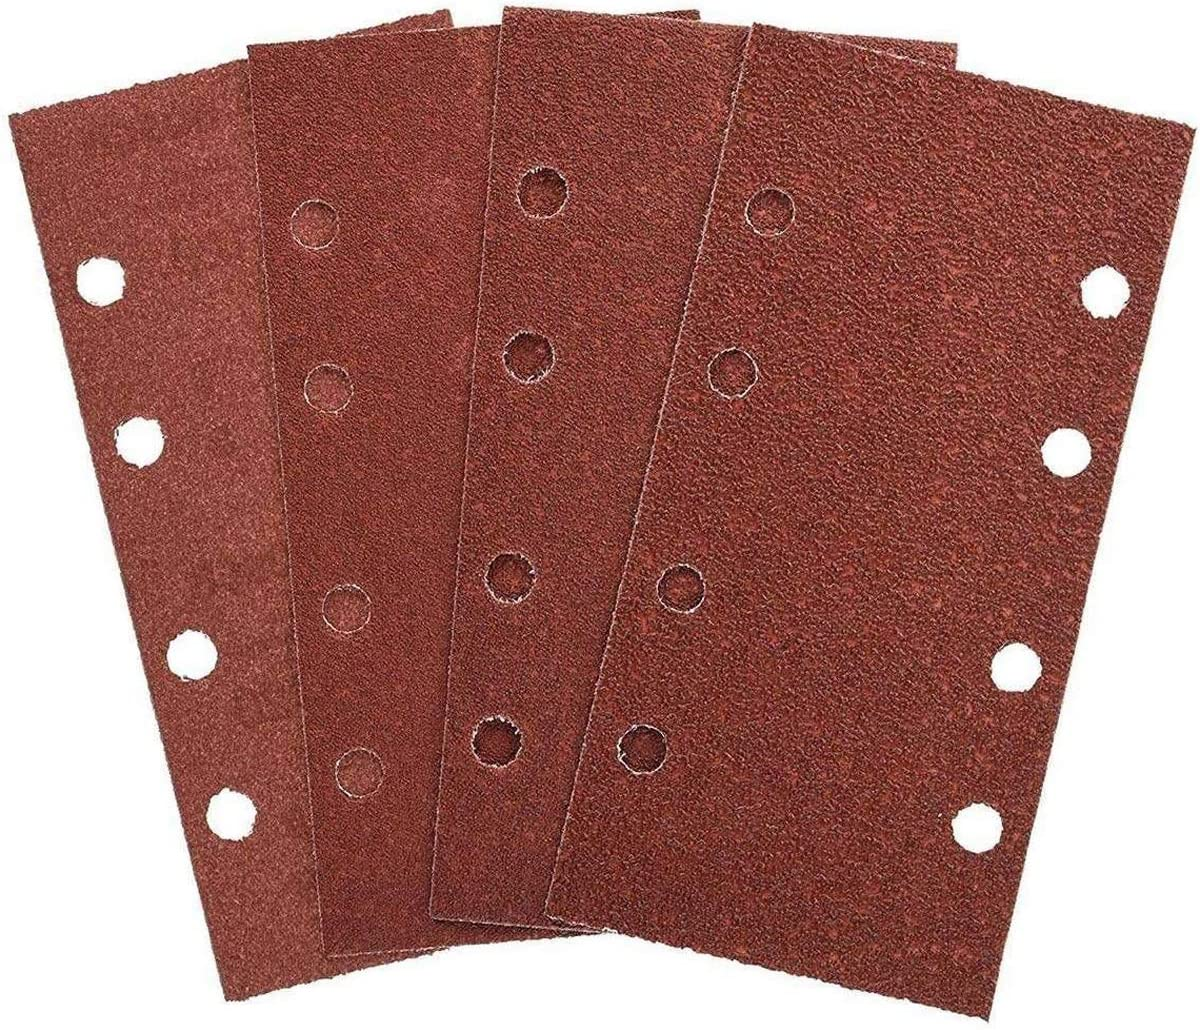 1//3 Sanding Sheets 240 Grit Pack of 10 Top Quality Sheets